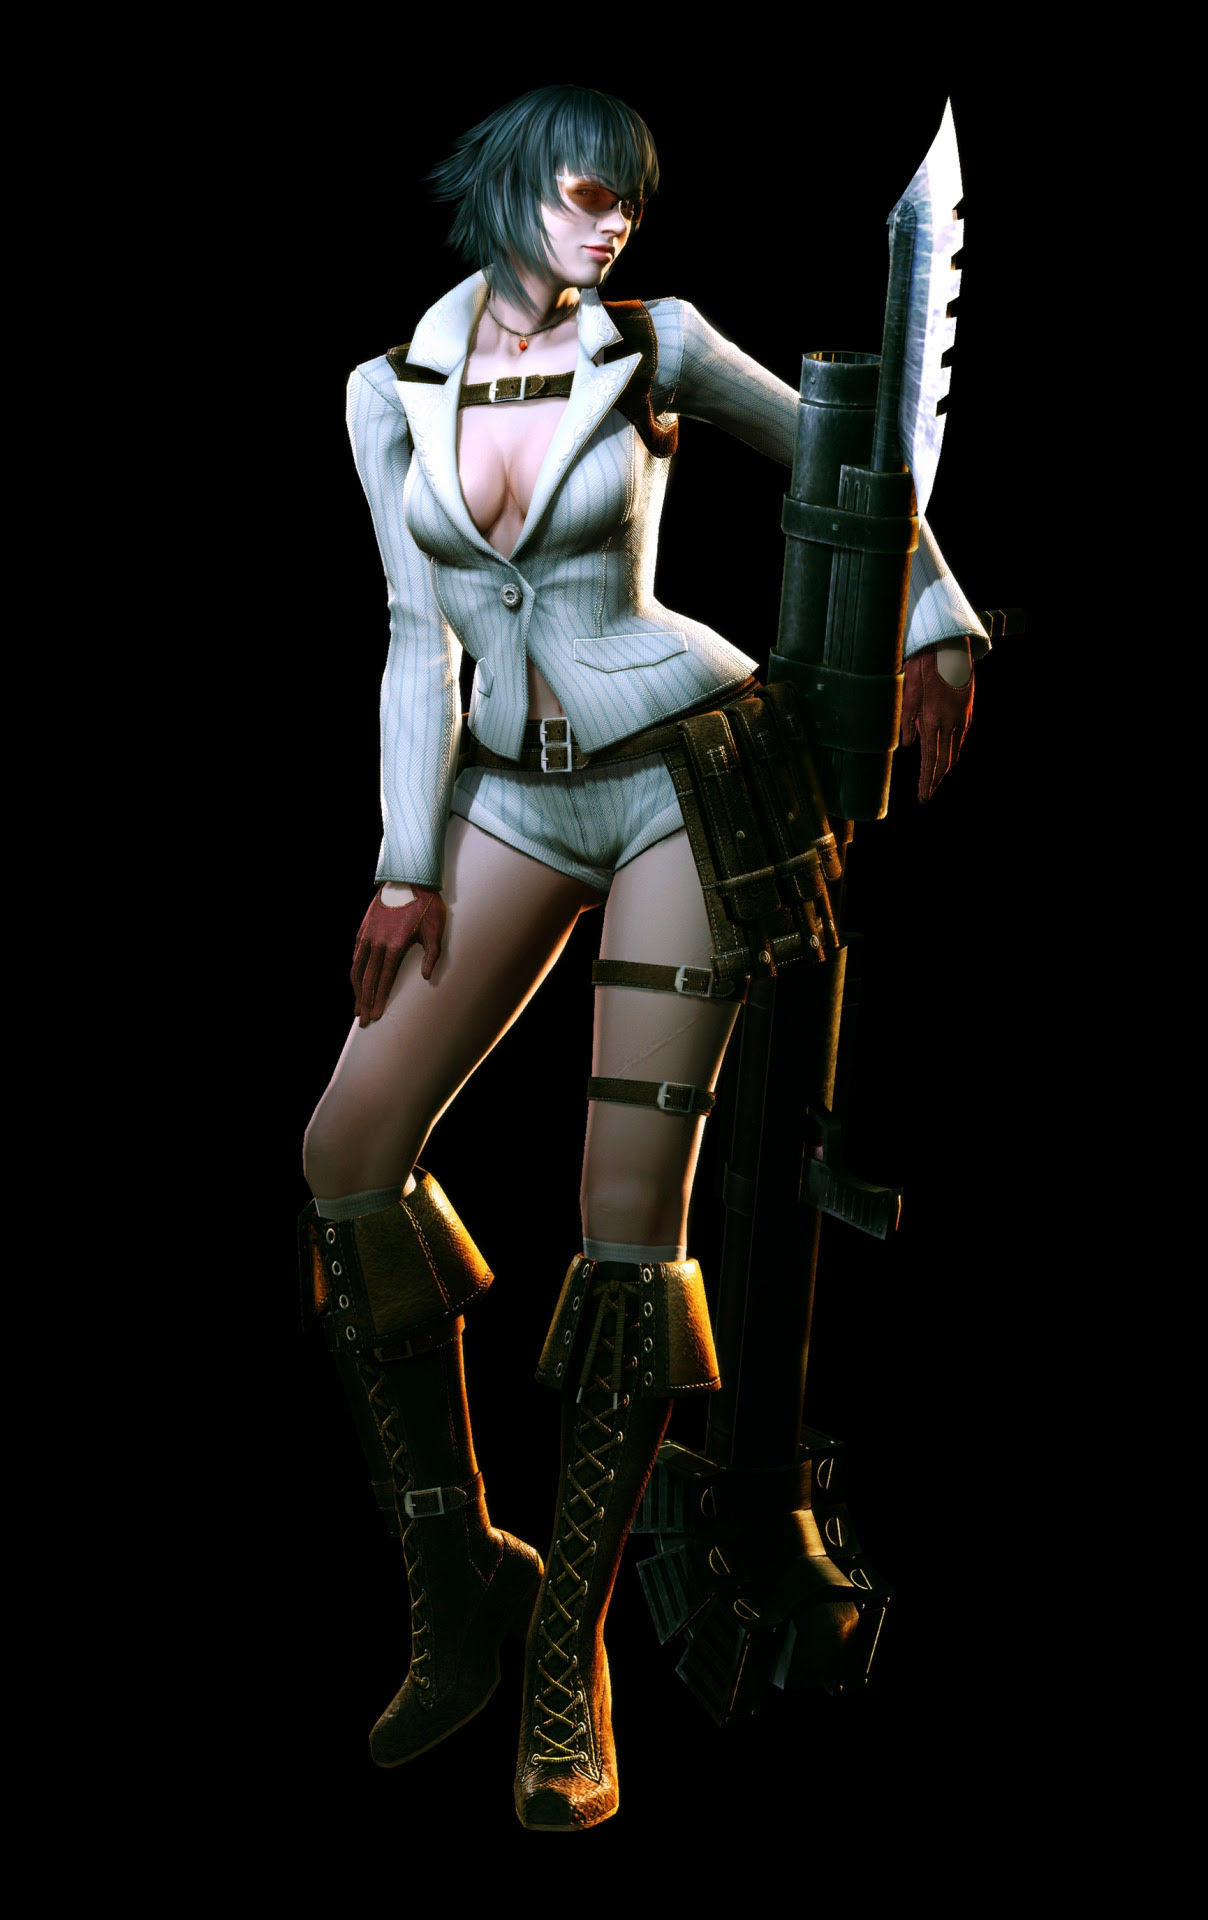 Devil May Cry 4 Special Edition Lady Devil May Cry 4 Photo